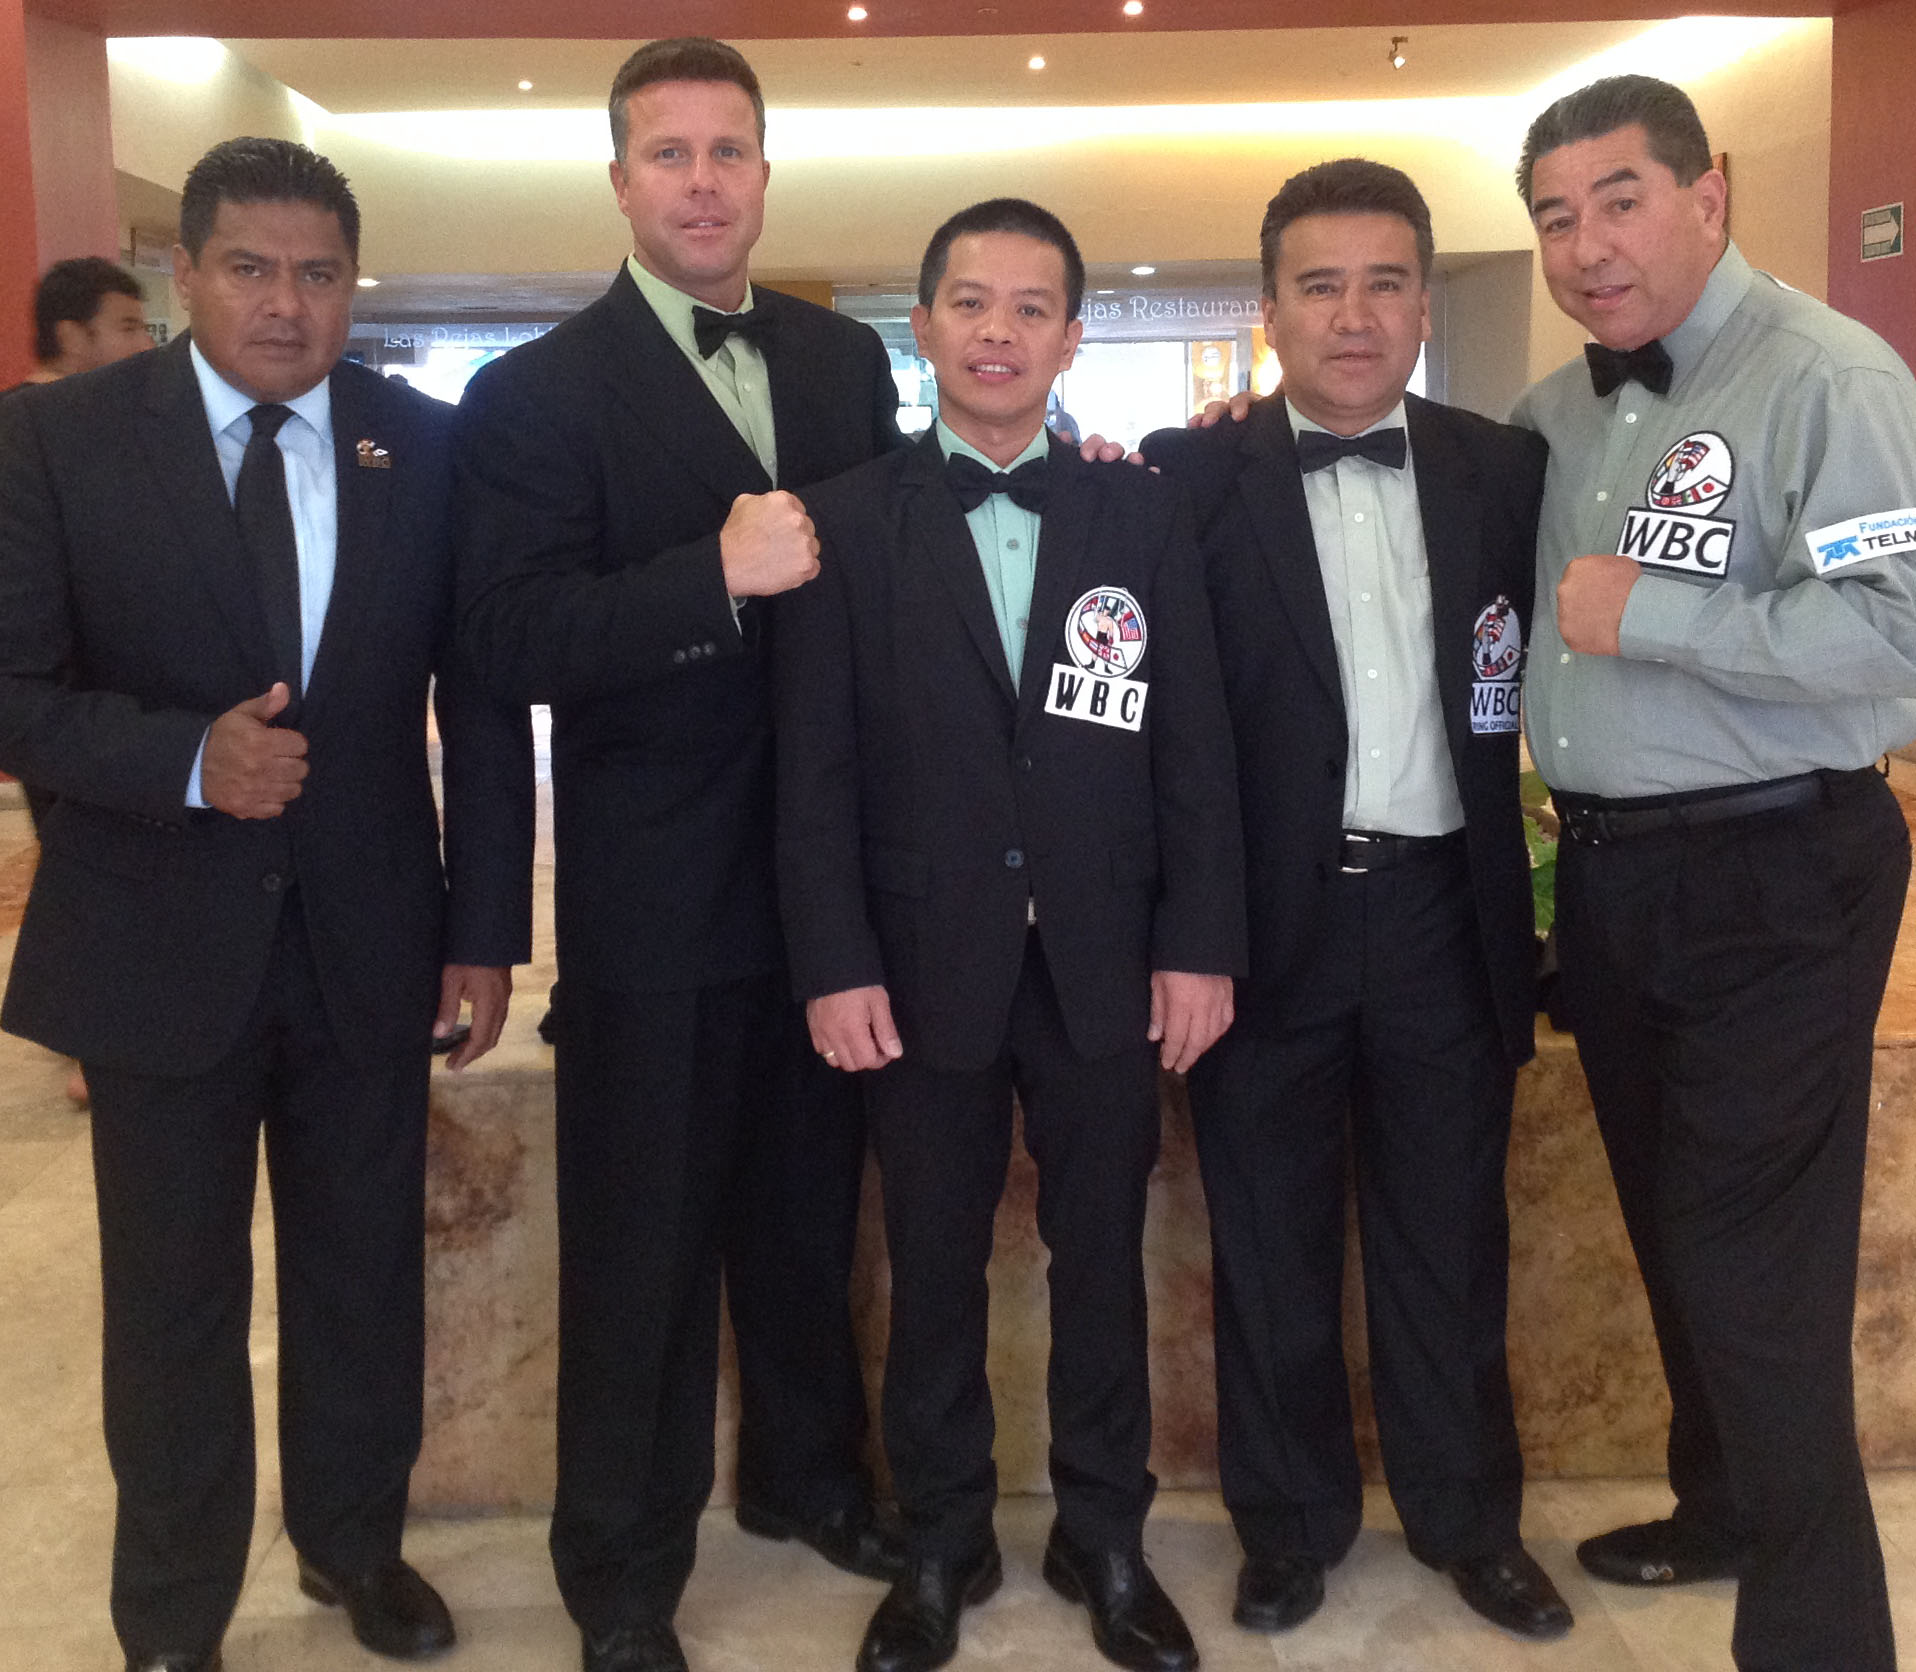 Filipino pride Judge Rey Danseco, center, with his fellow officials in the WBC light flyweight champion Pedro Guevara versus Richard Claveras on April 11 in Mazatlan, Mexico. From left, supervisor, Atty. Juan Carlos Pelayo, judge Tom Taylor, Danseco, Mexico's Humberto Olivarez, and American referee Jerry Cantu. (Photo courtesy of WBC)